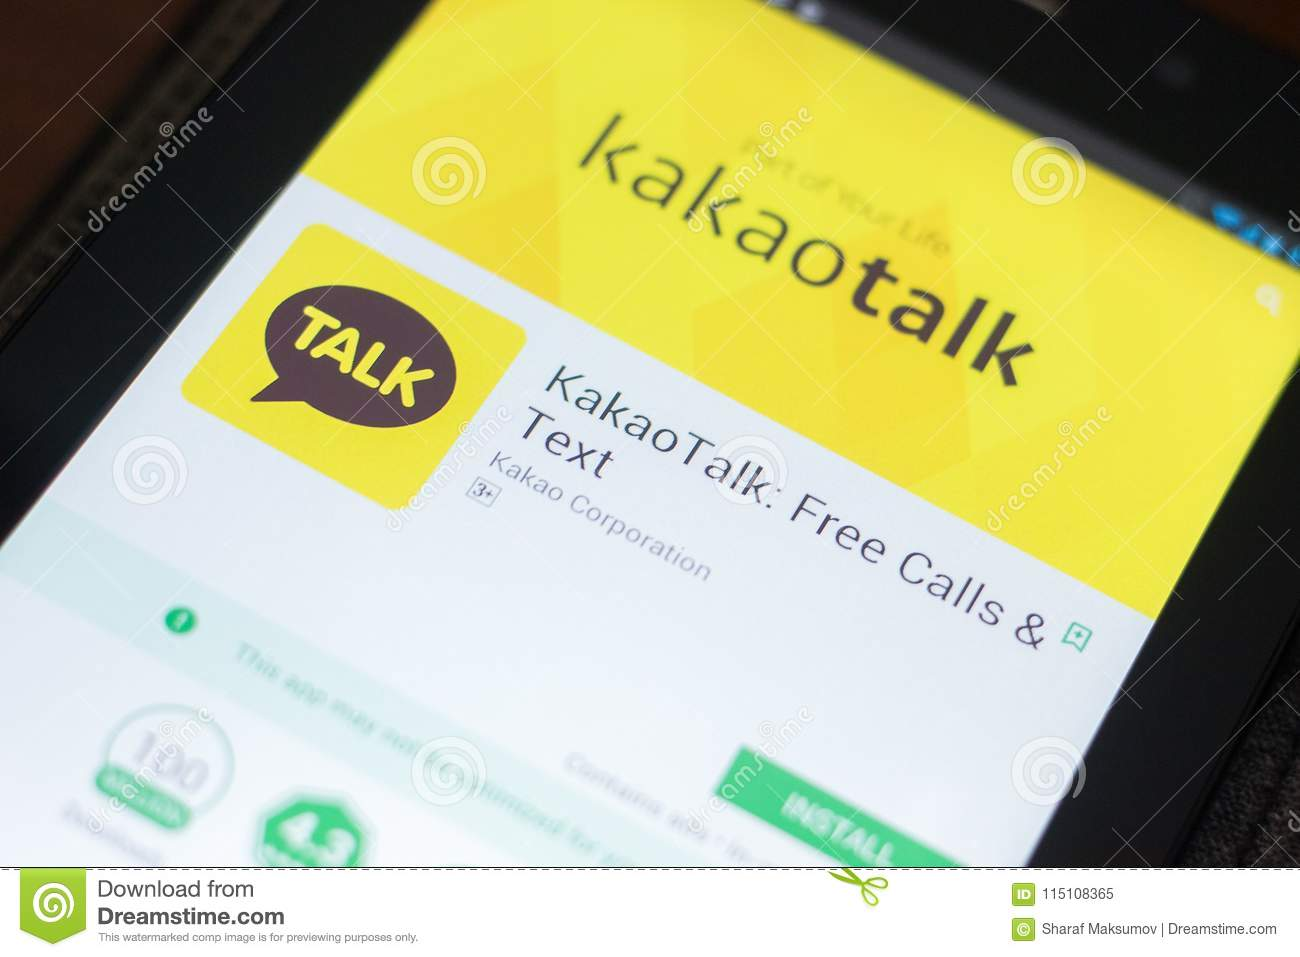 kakaotalk on tablet without phone number